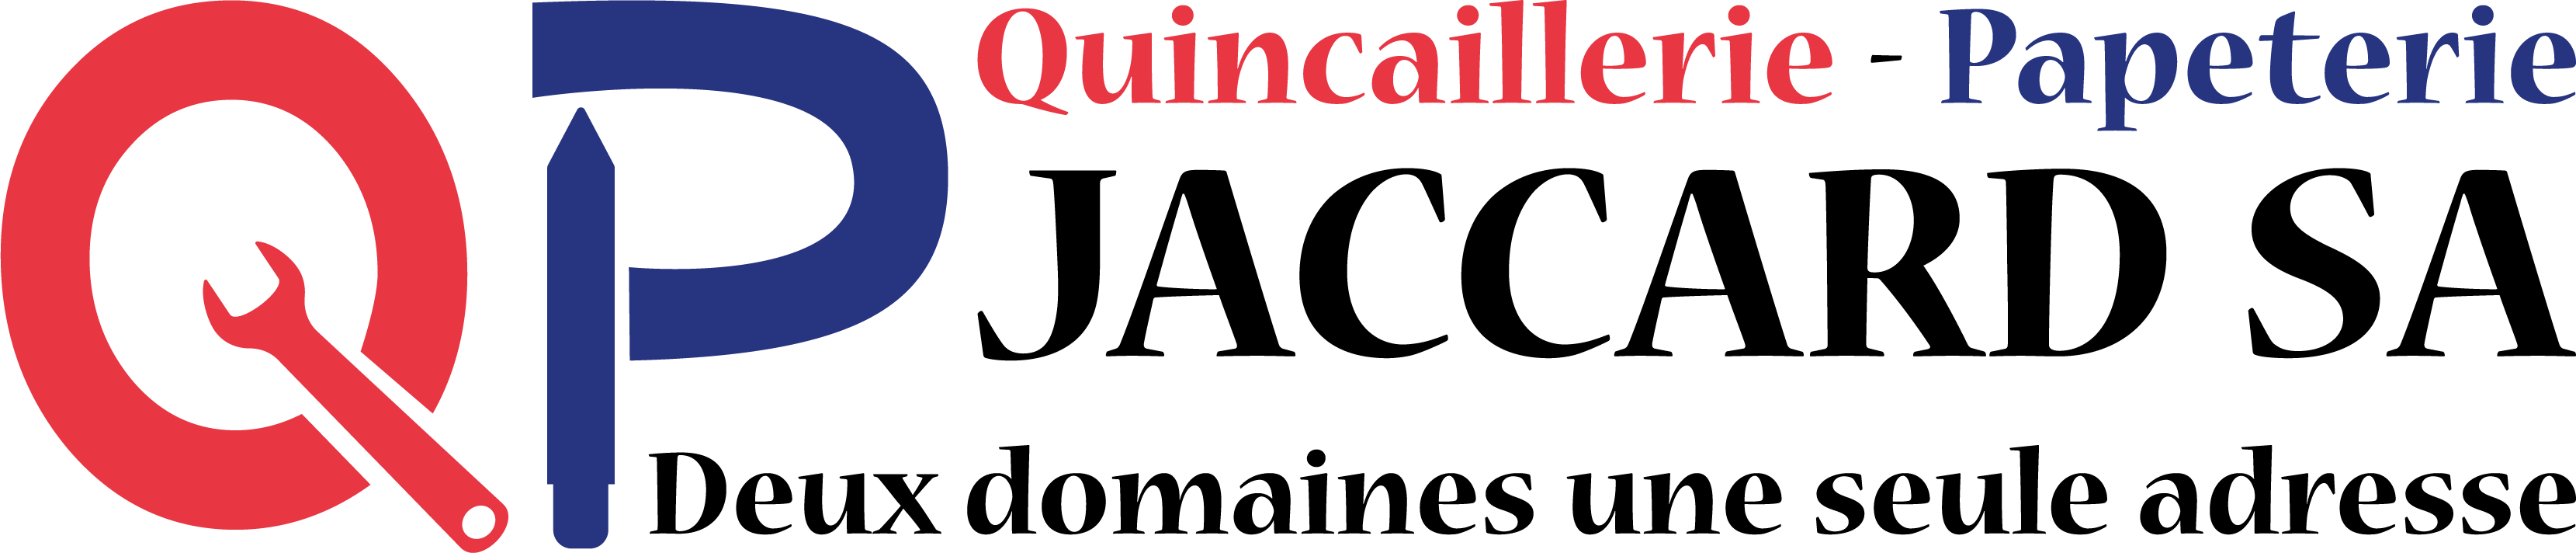 Quincaillerie Jaccard